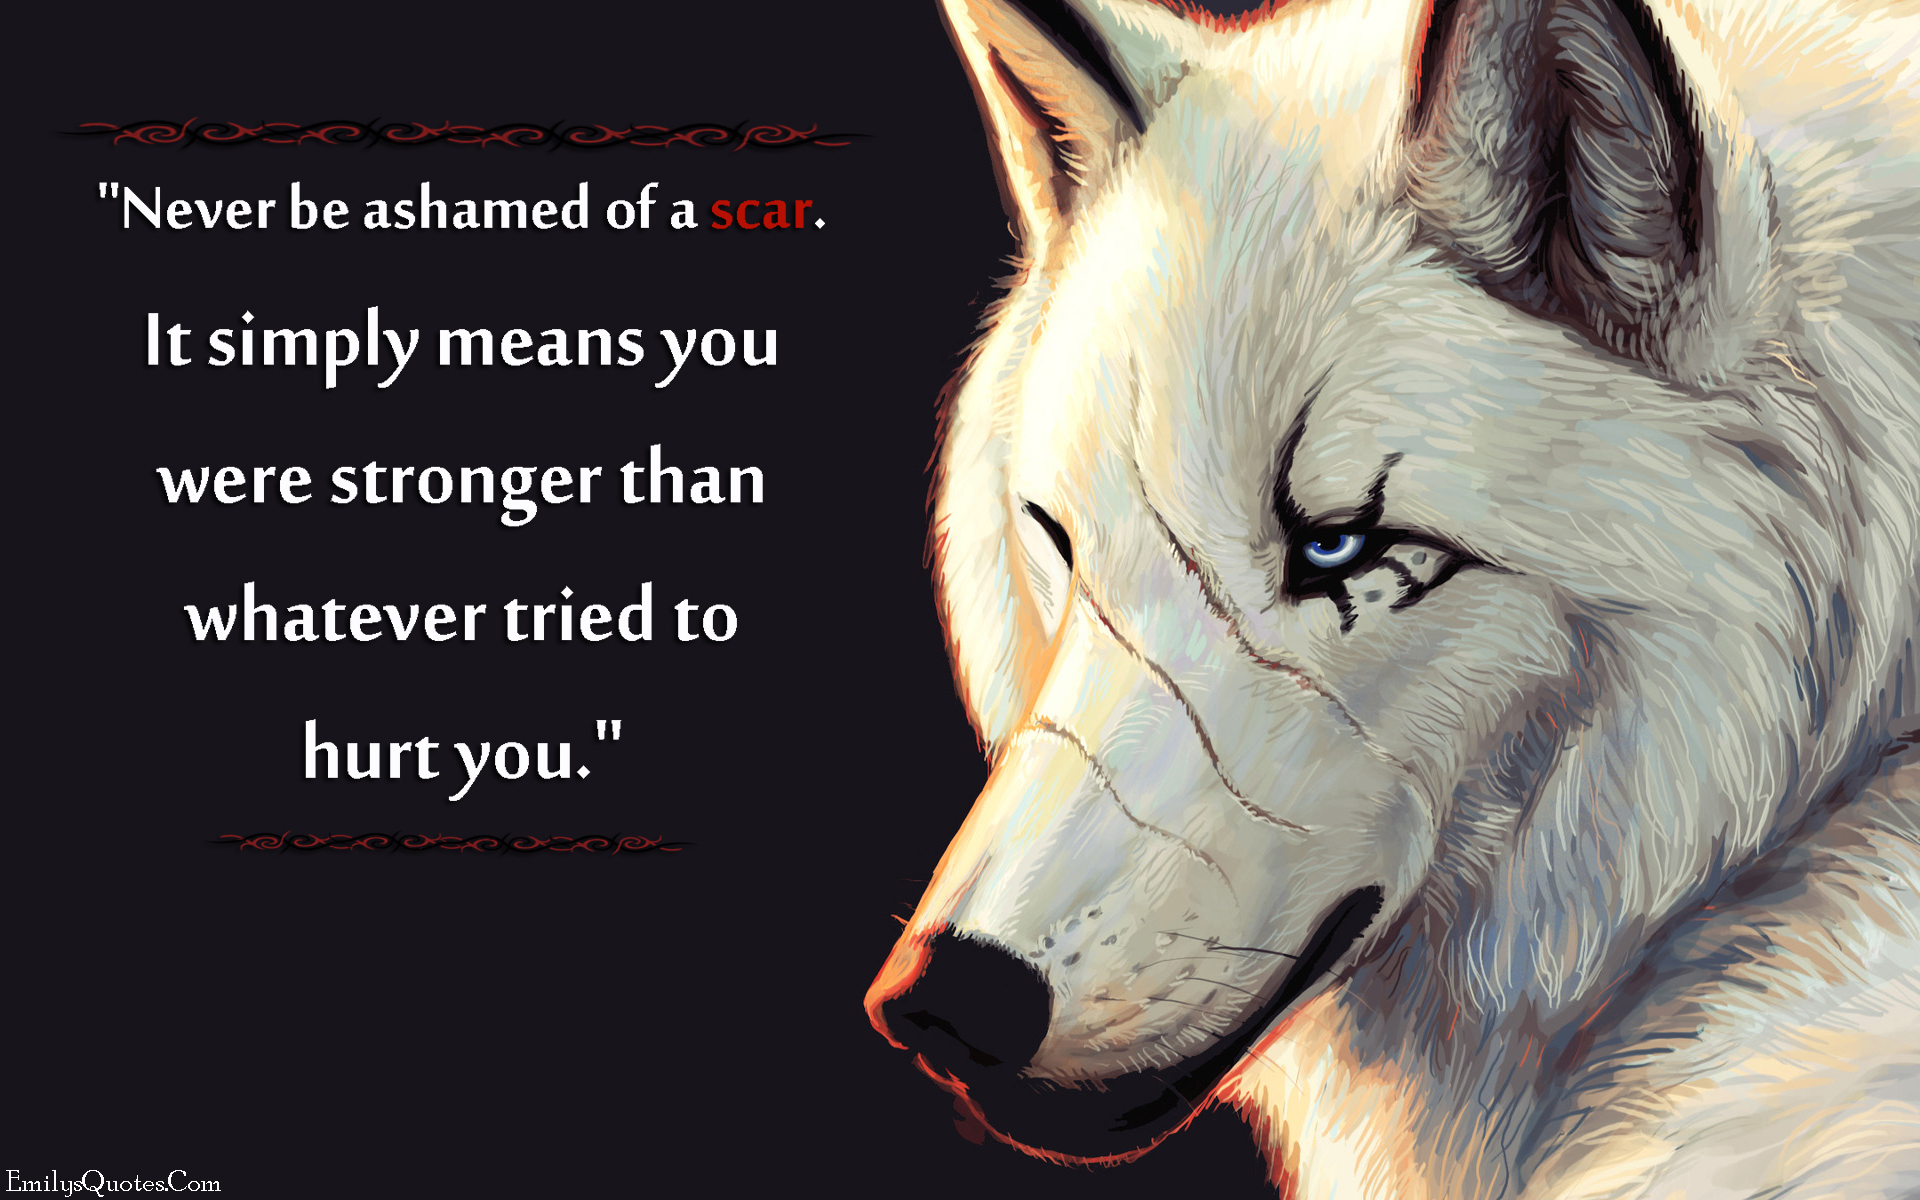 EmilysQuotes.Com - scar, ashamed, strength, hurt, great, threat, motivational, unknown